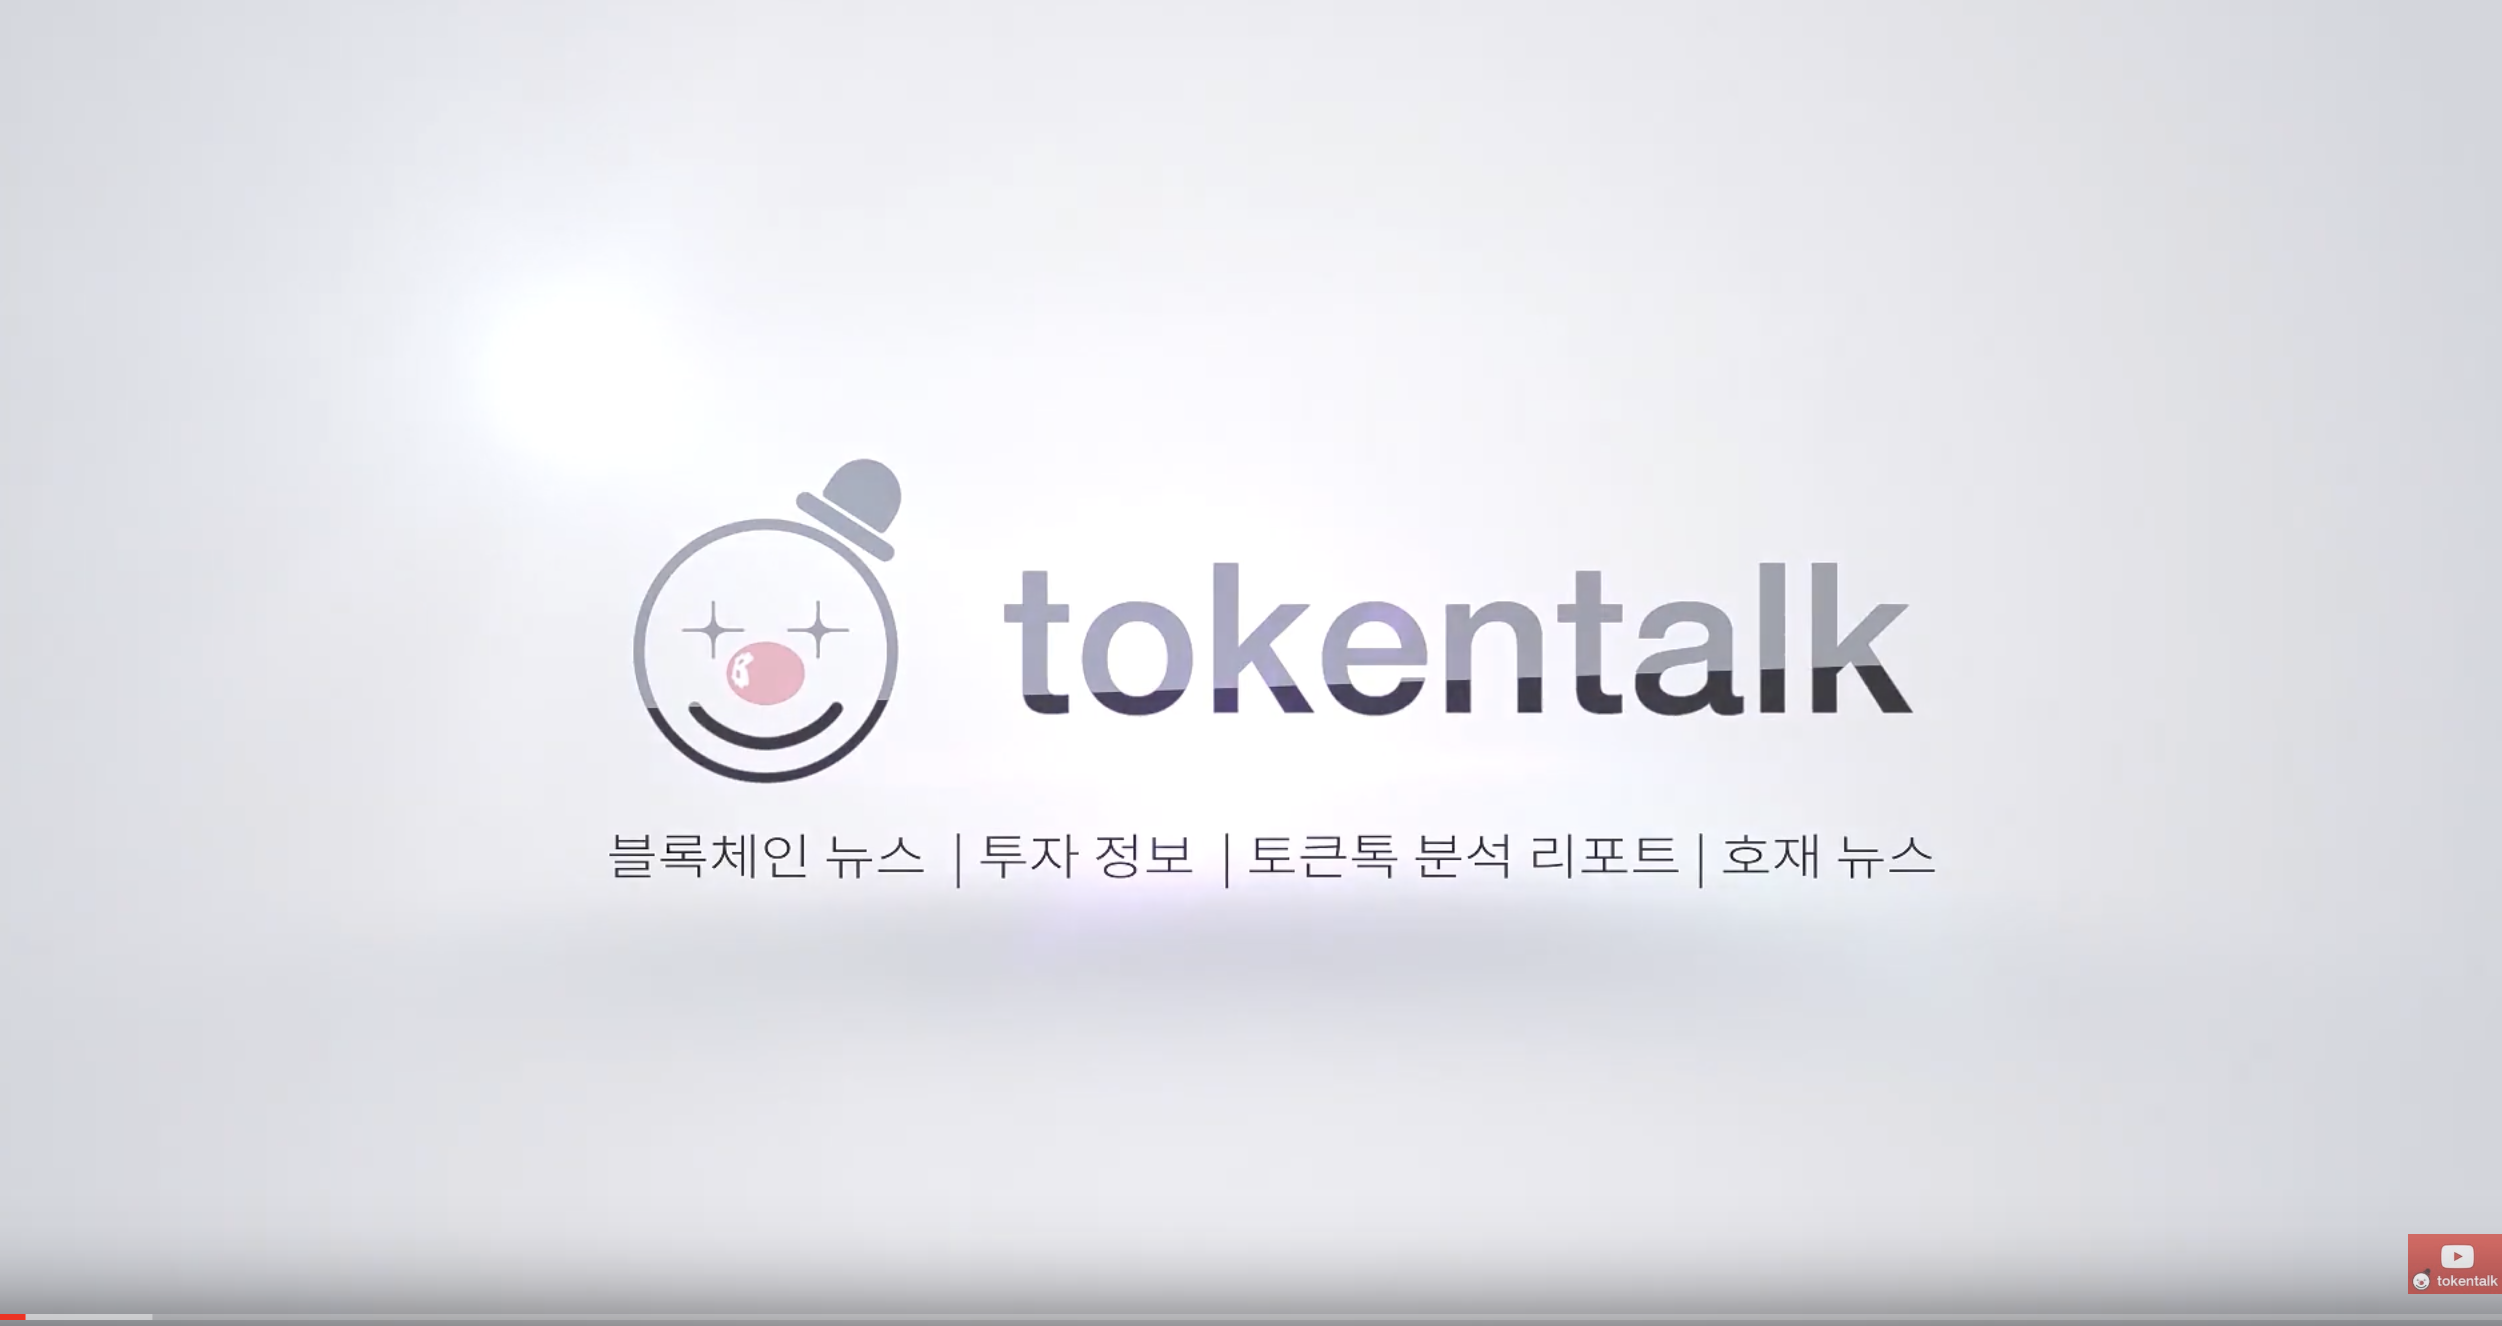 [Token Talk] The first series of 'visiting the top Blockchain Caffe DeCentre'